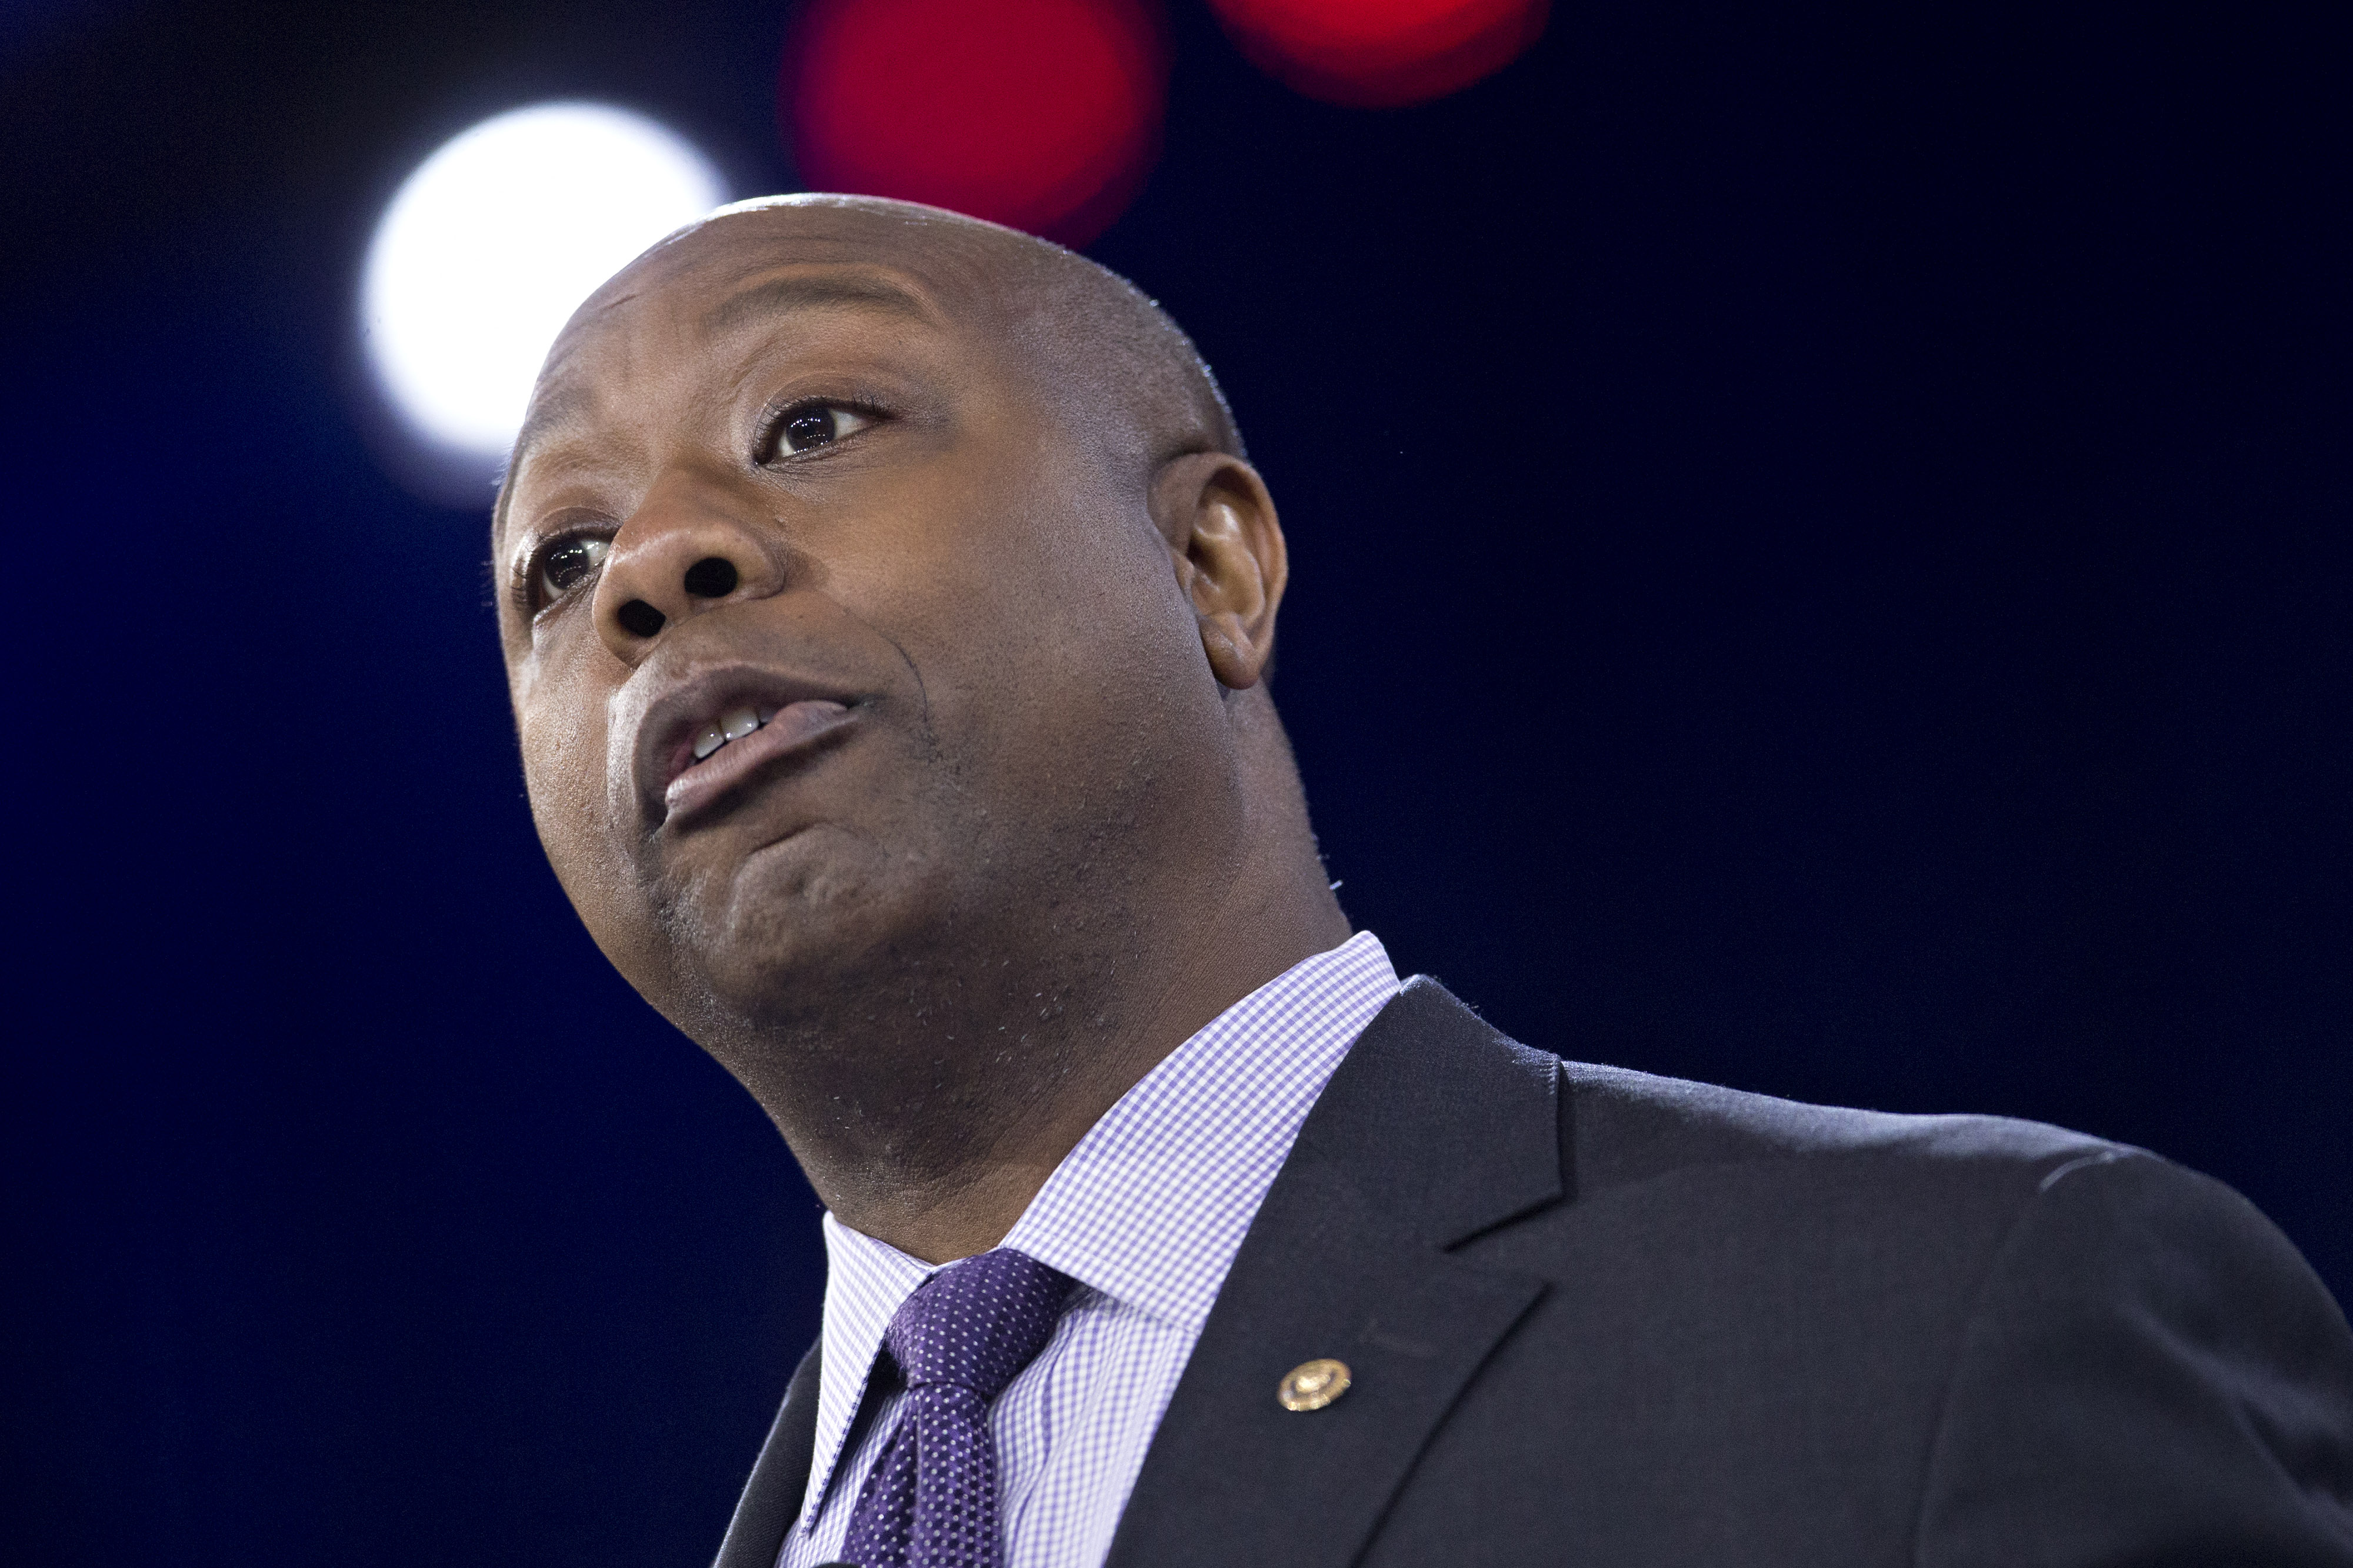 Senator Tim Scott, a Republican from South Carolina, speaks during the Conservative Political Action Conference (CPAC) meeting in National Harbor, Maryland on March 3, 2016.